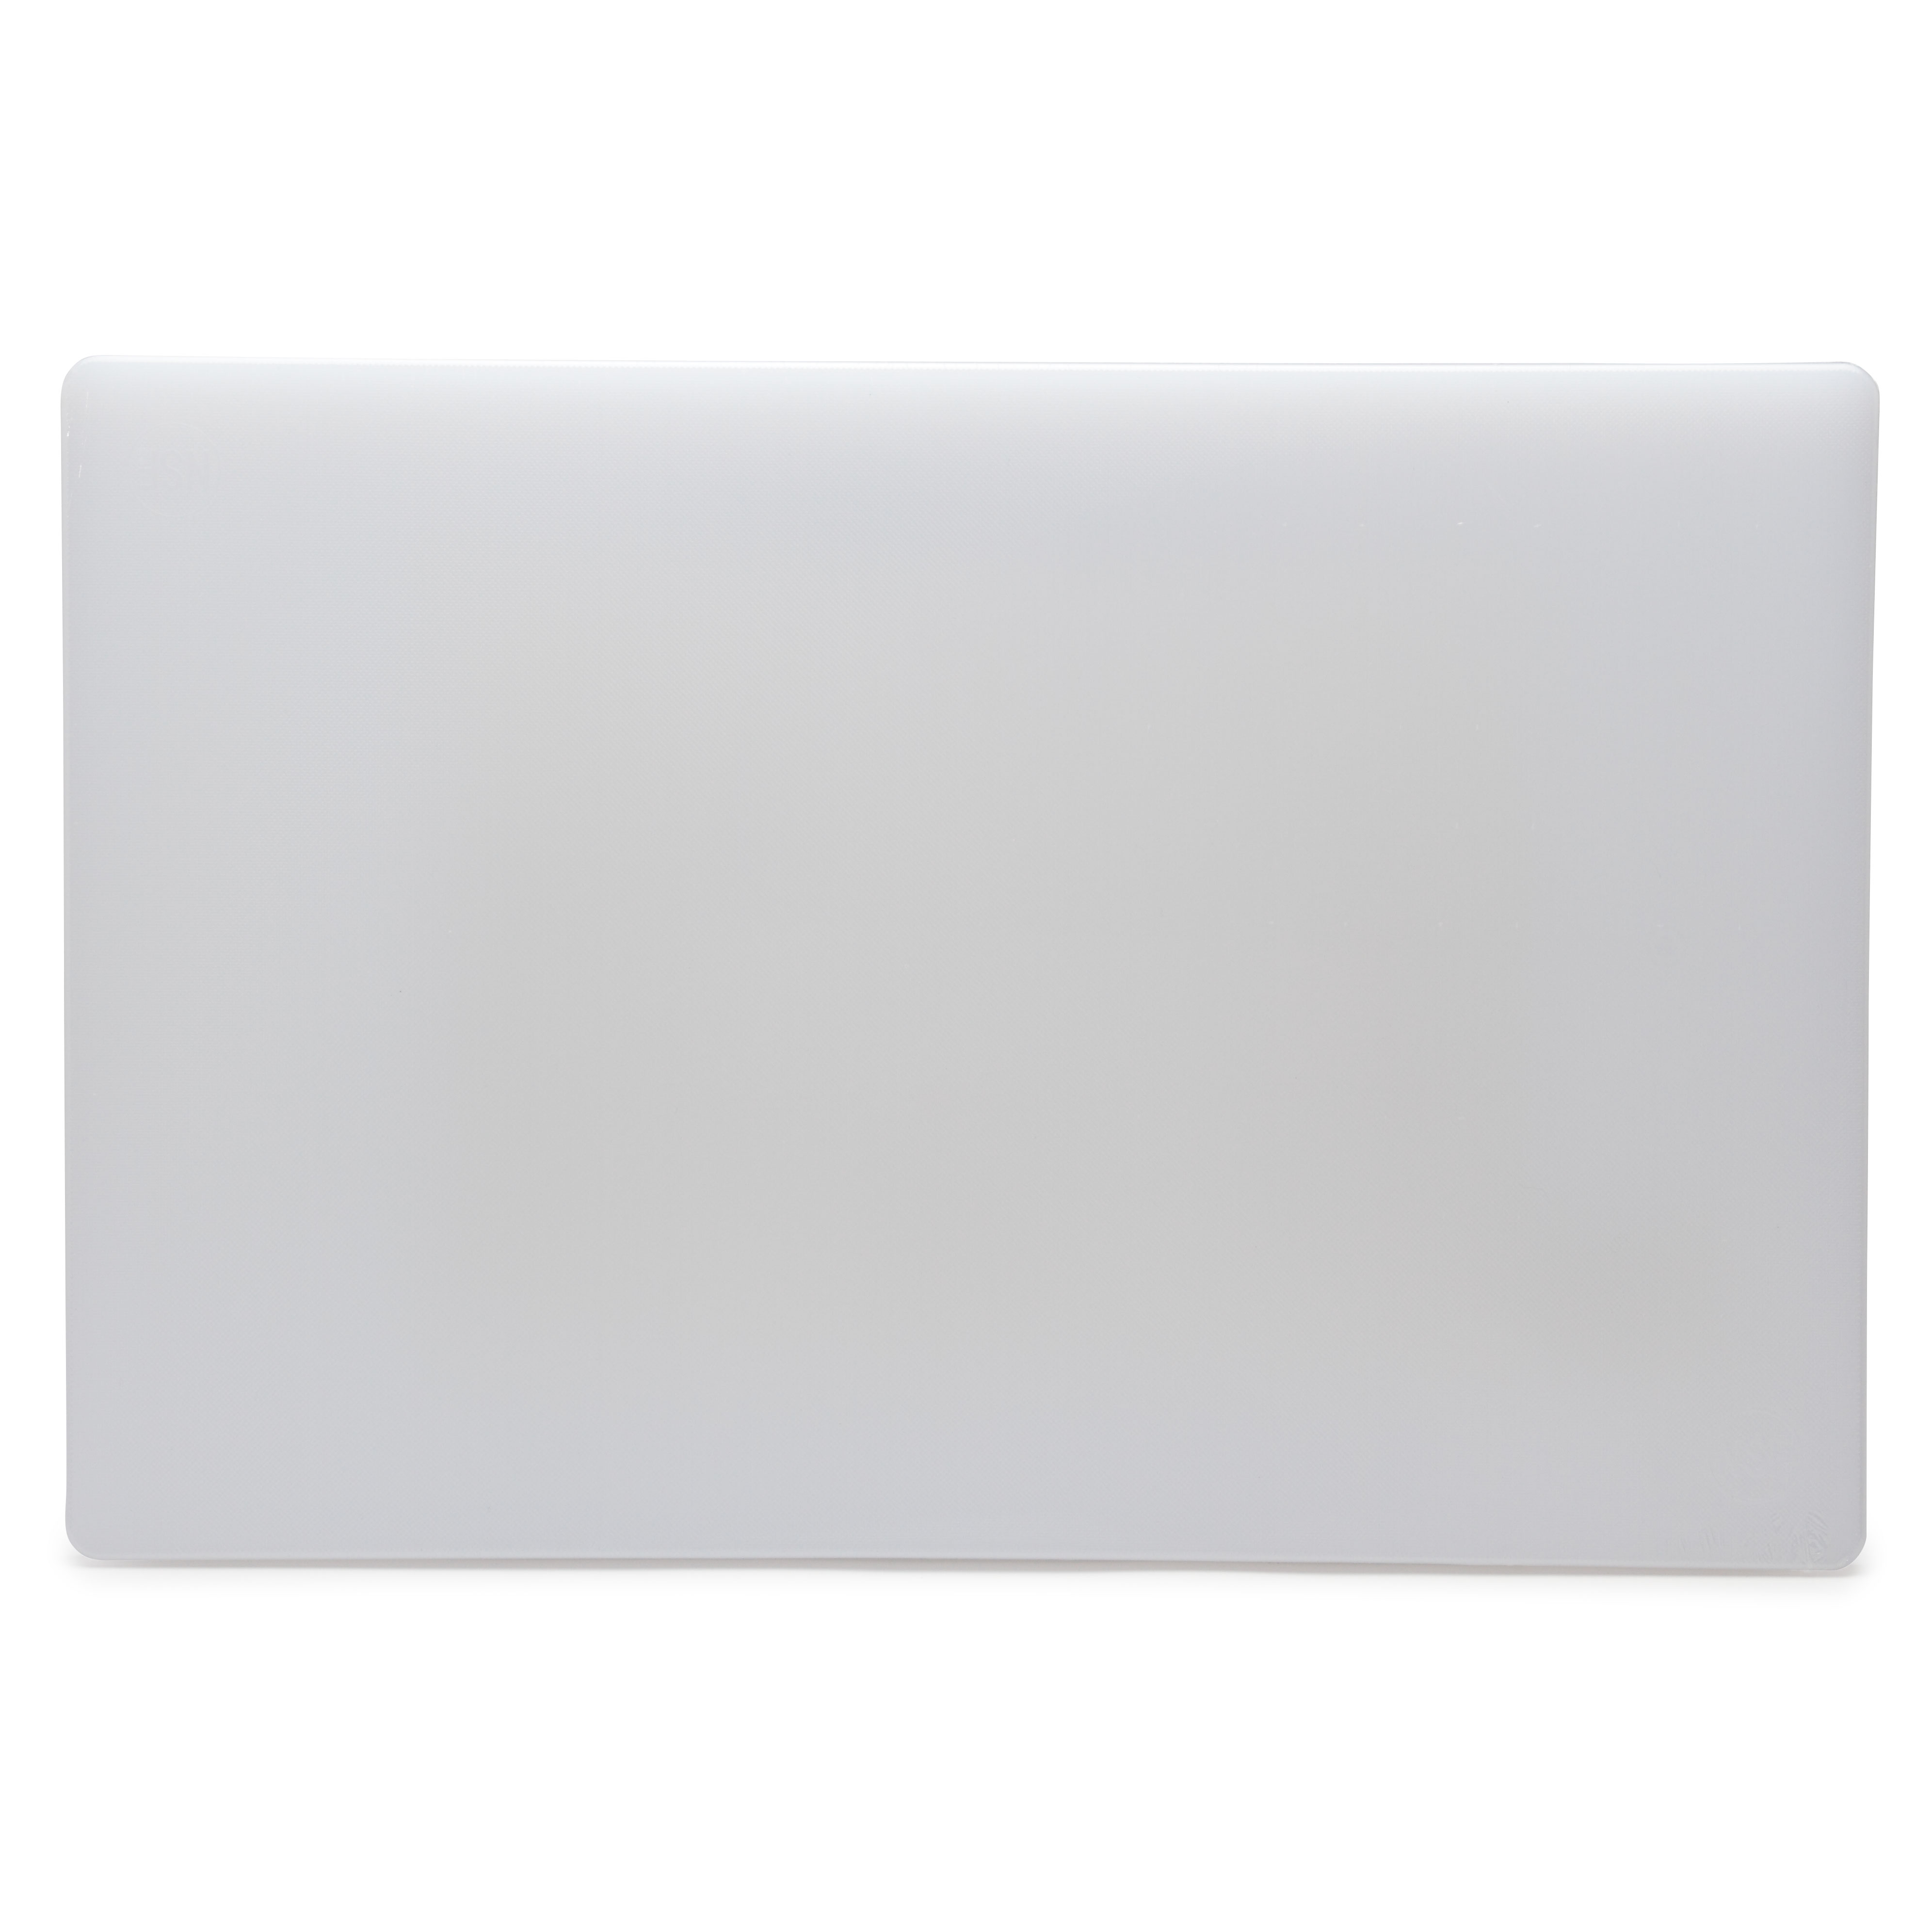 Royal Industries ROY CB 182434 cutting board, plastic